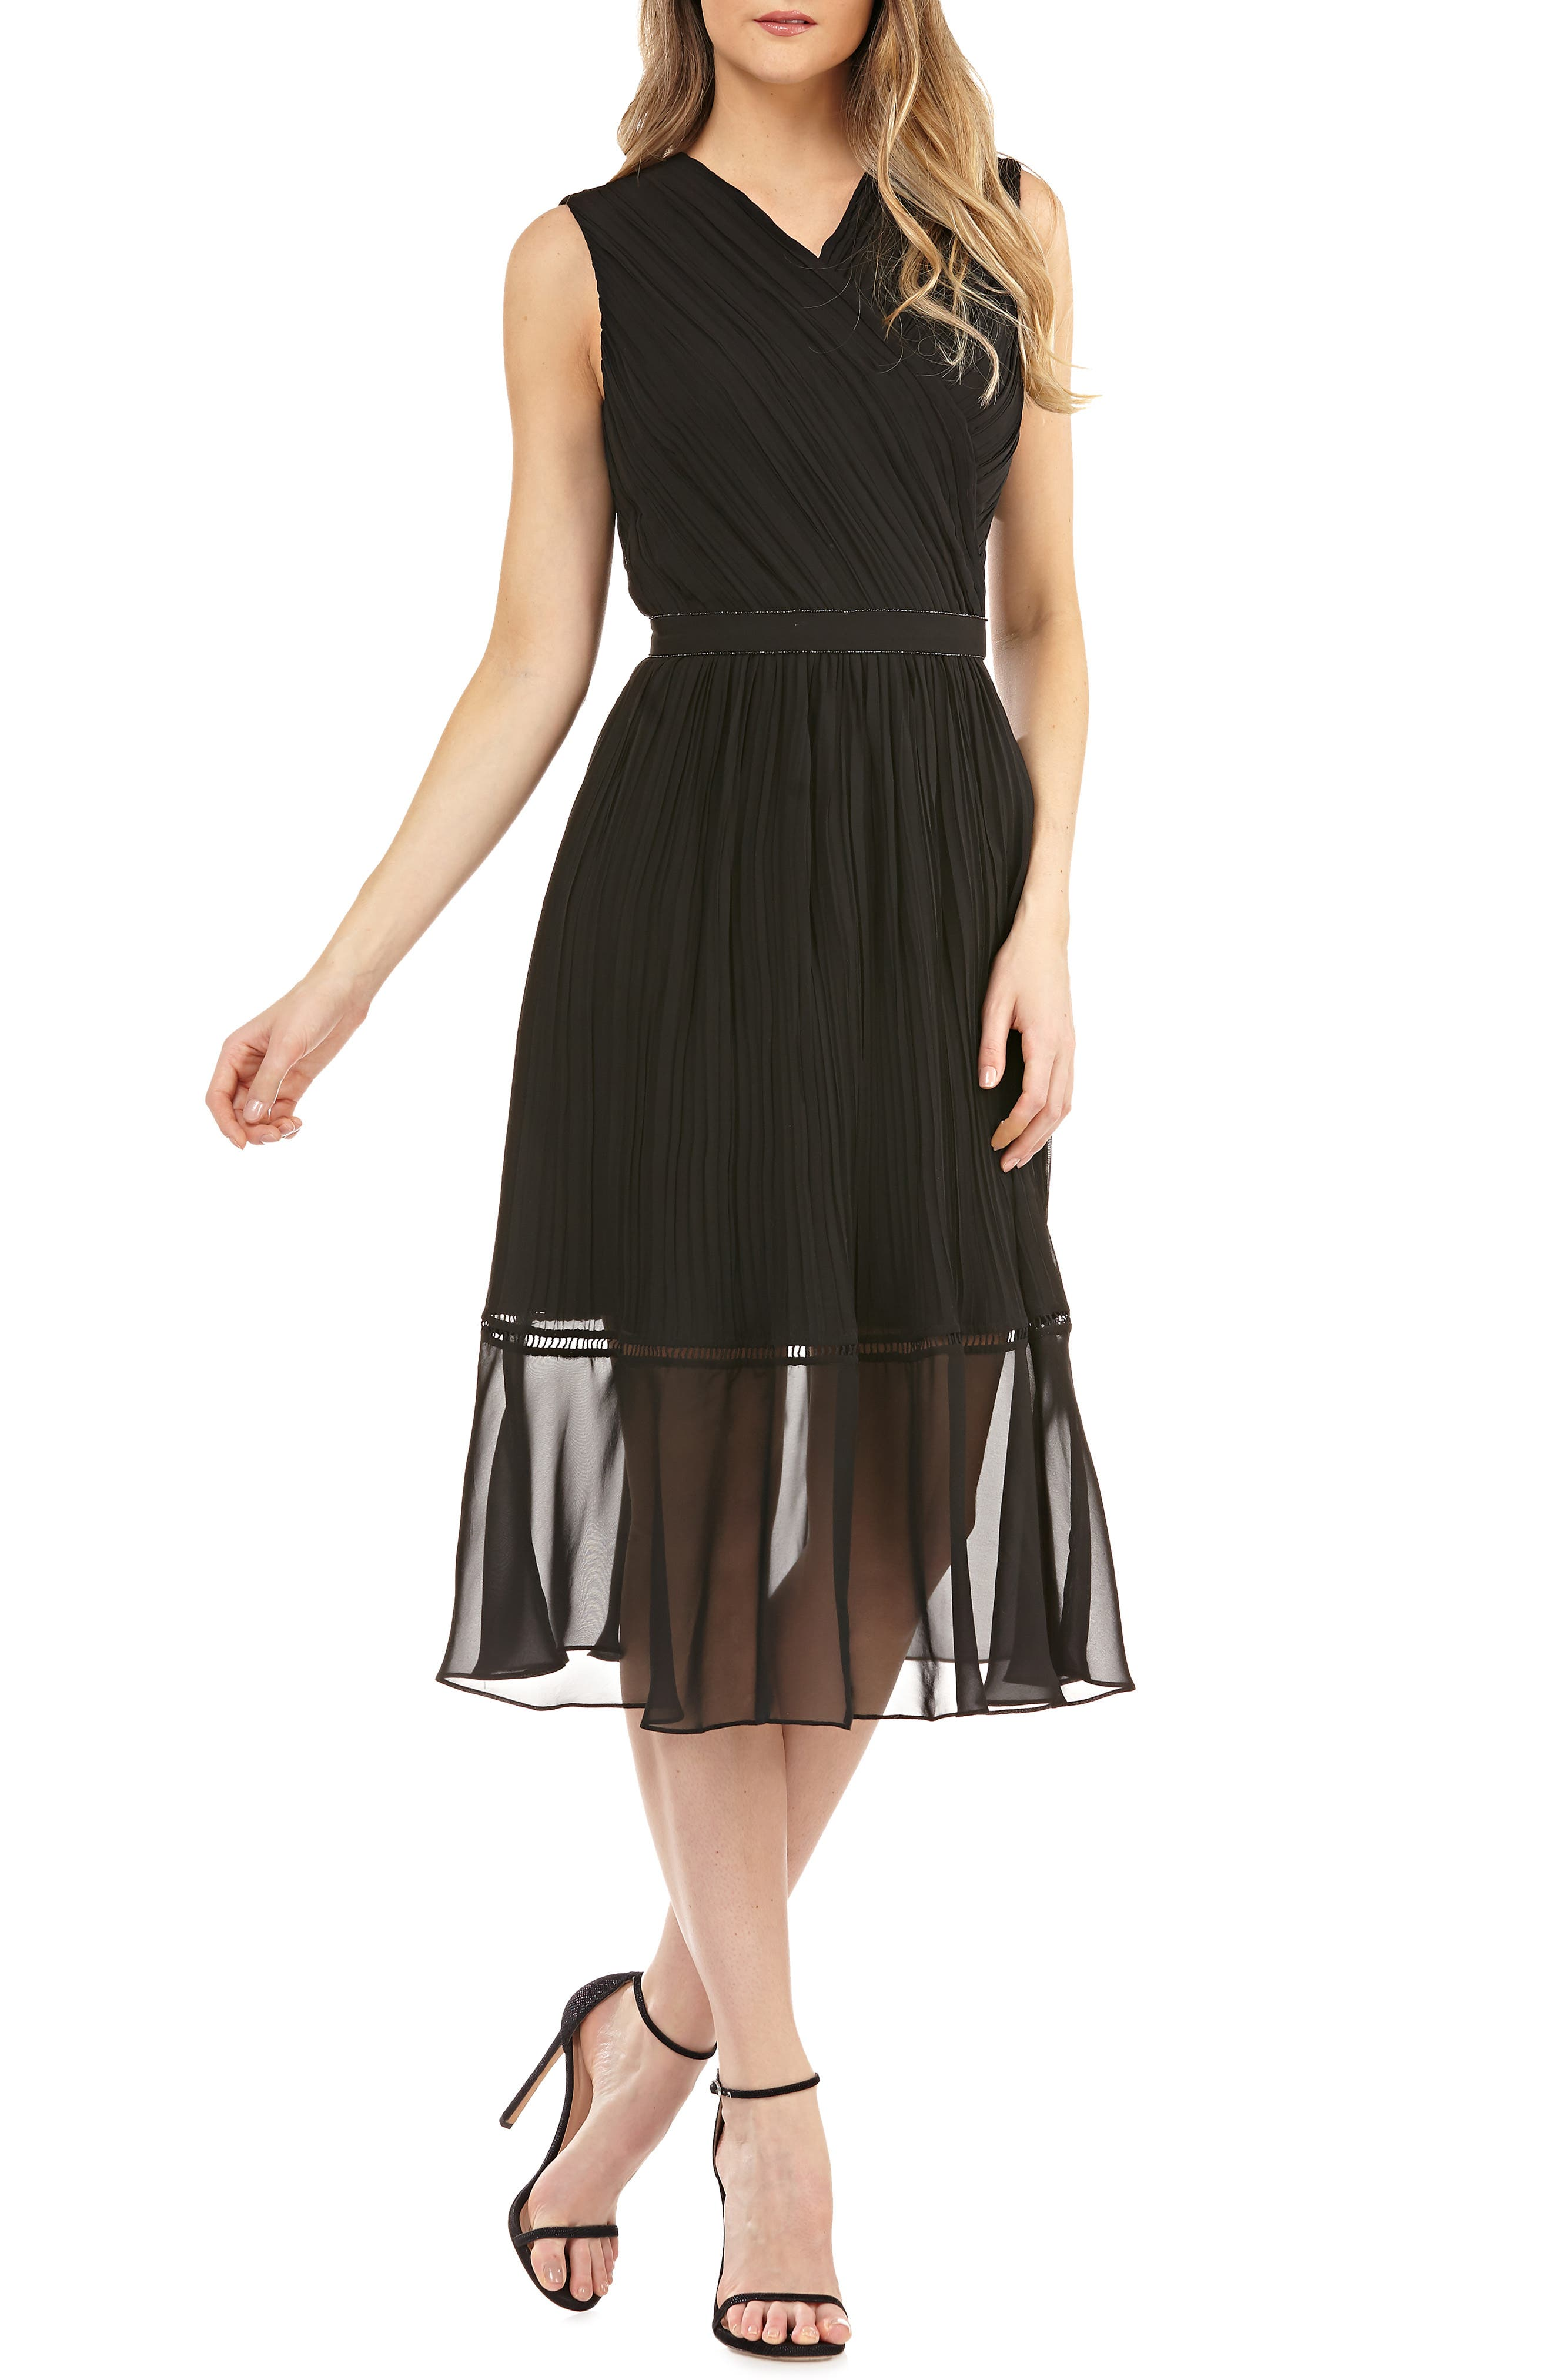 KAY UNGER Pleated Chiffon Faux Wrap Cocktail Dress in Black